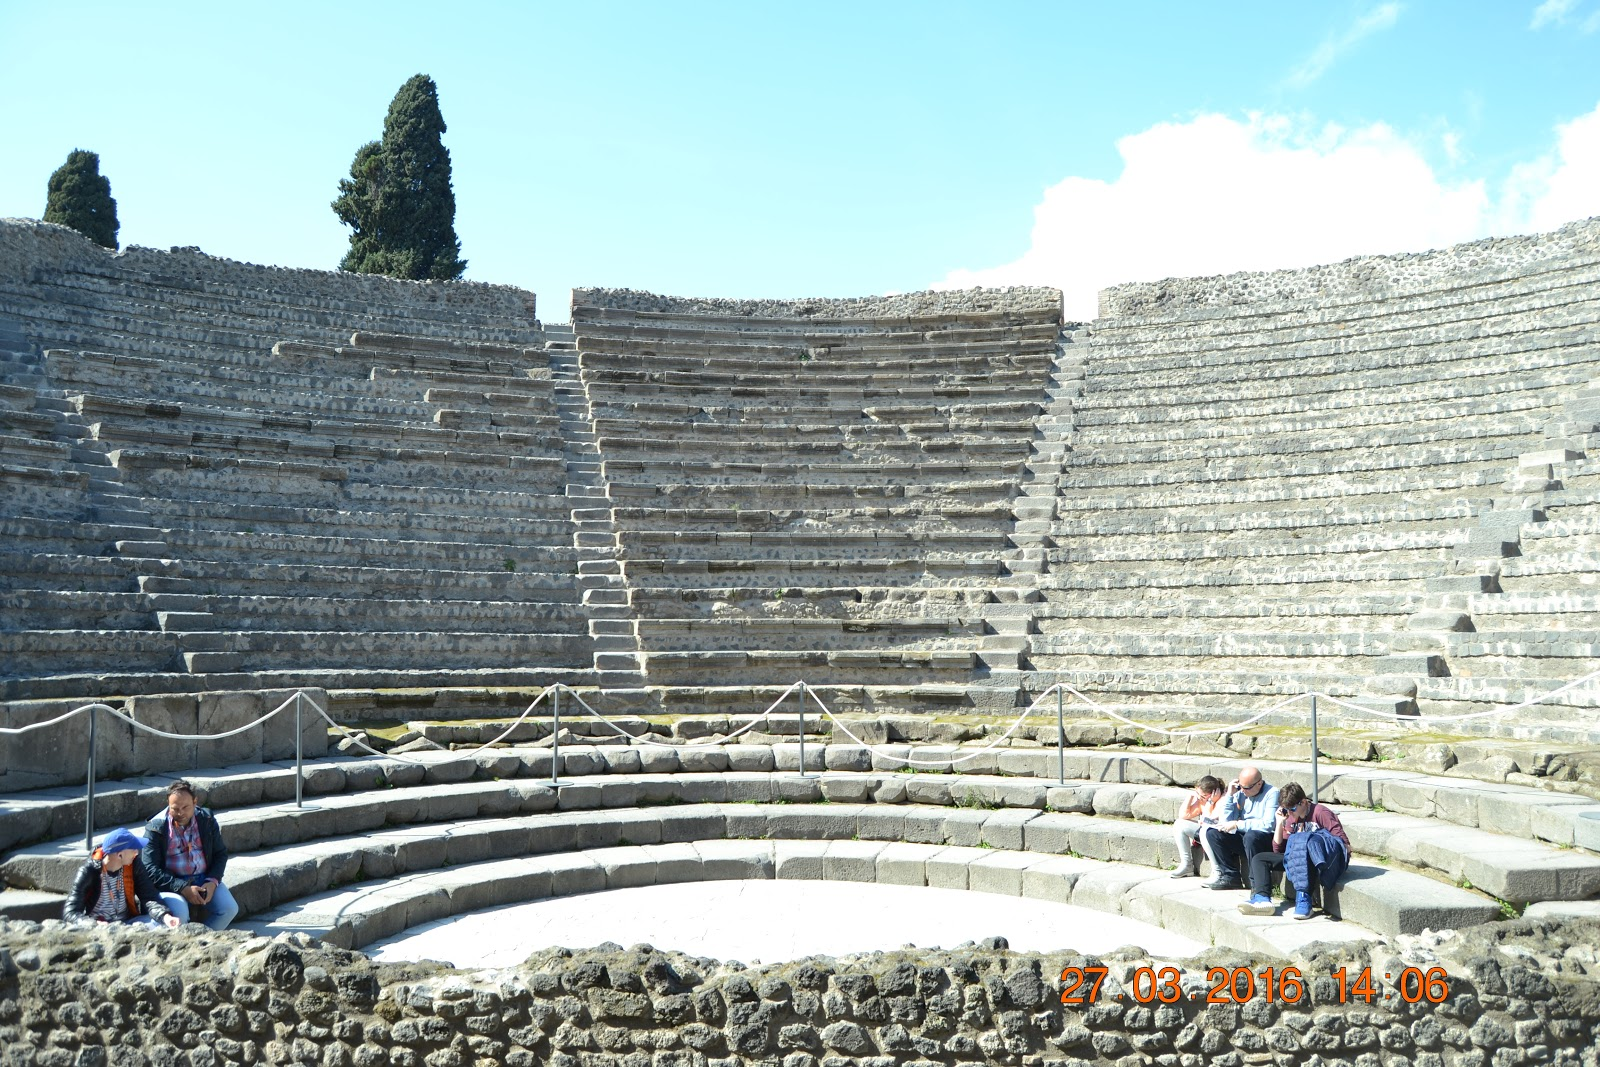 Forum of the Pompeii where arts were practiced